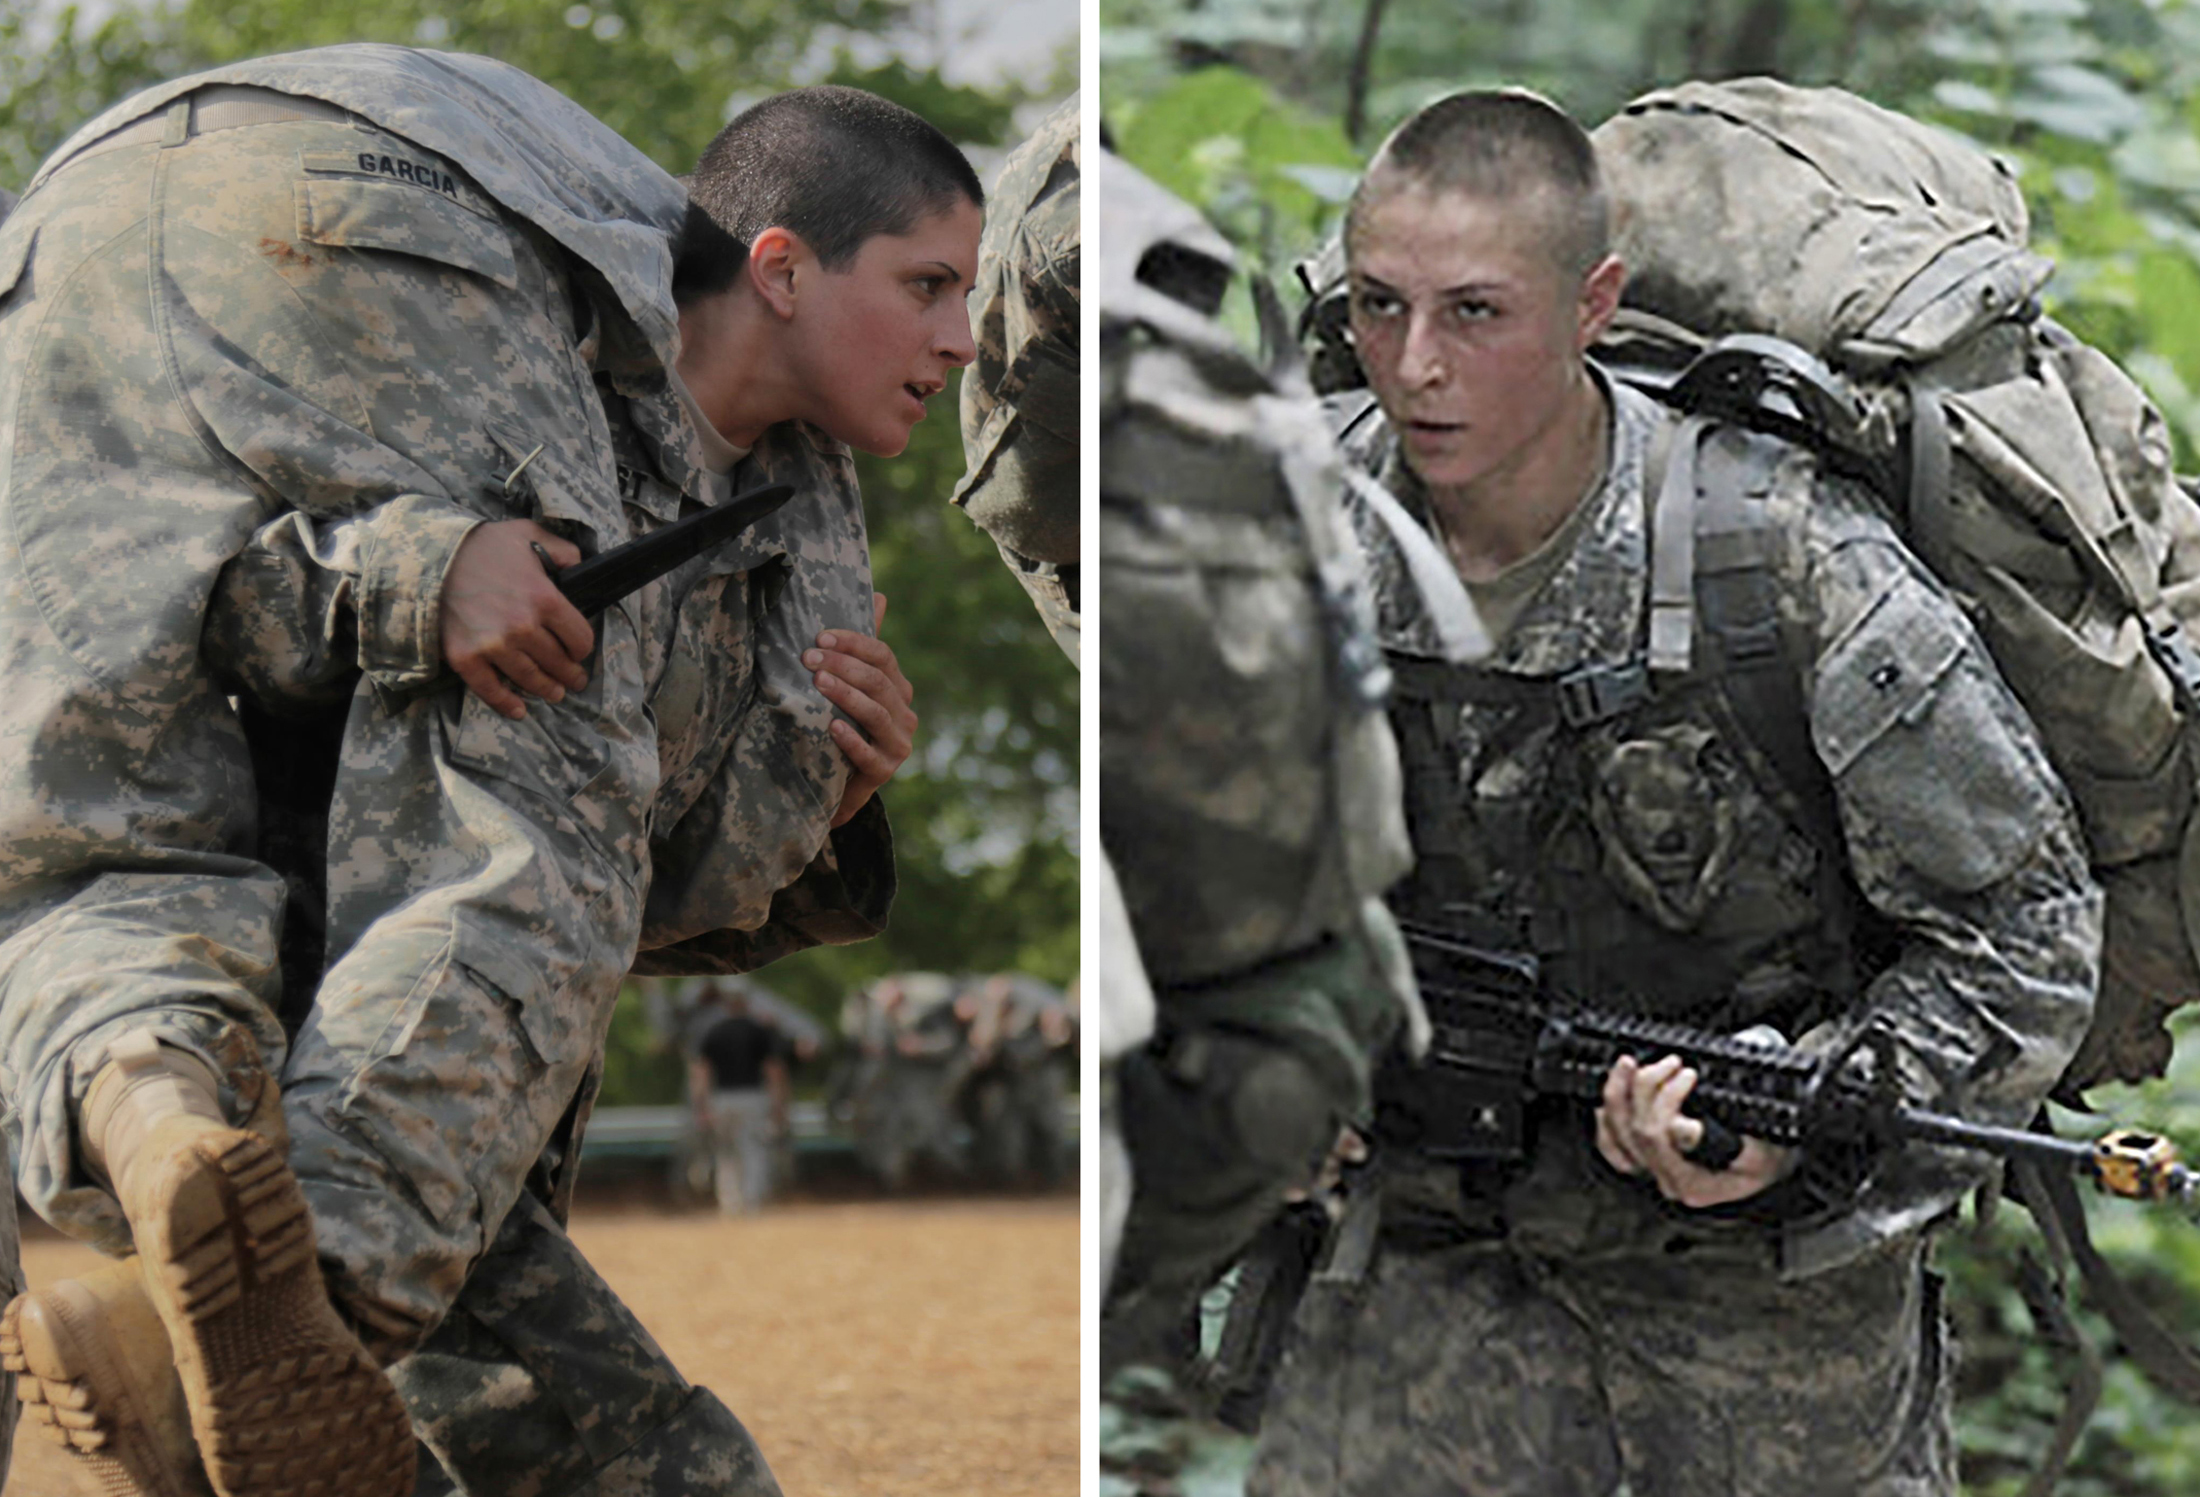 U.S. Army Capt. Kirsten Griest (L)  and First Lieutenant Shaye Haver (R)